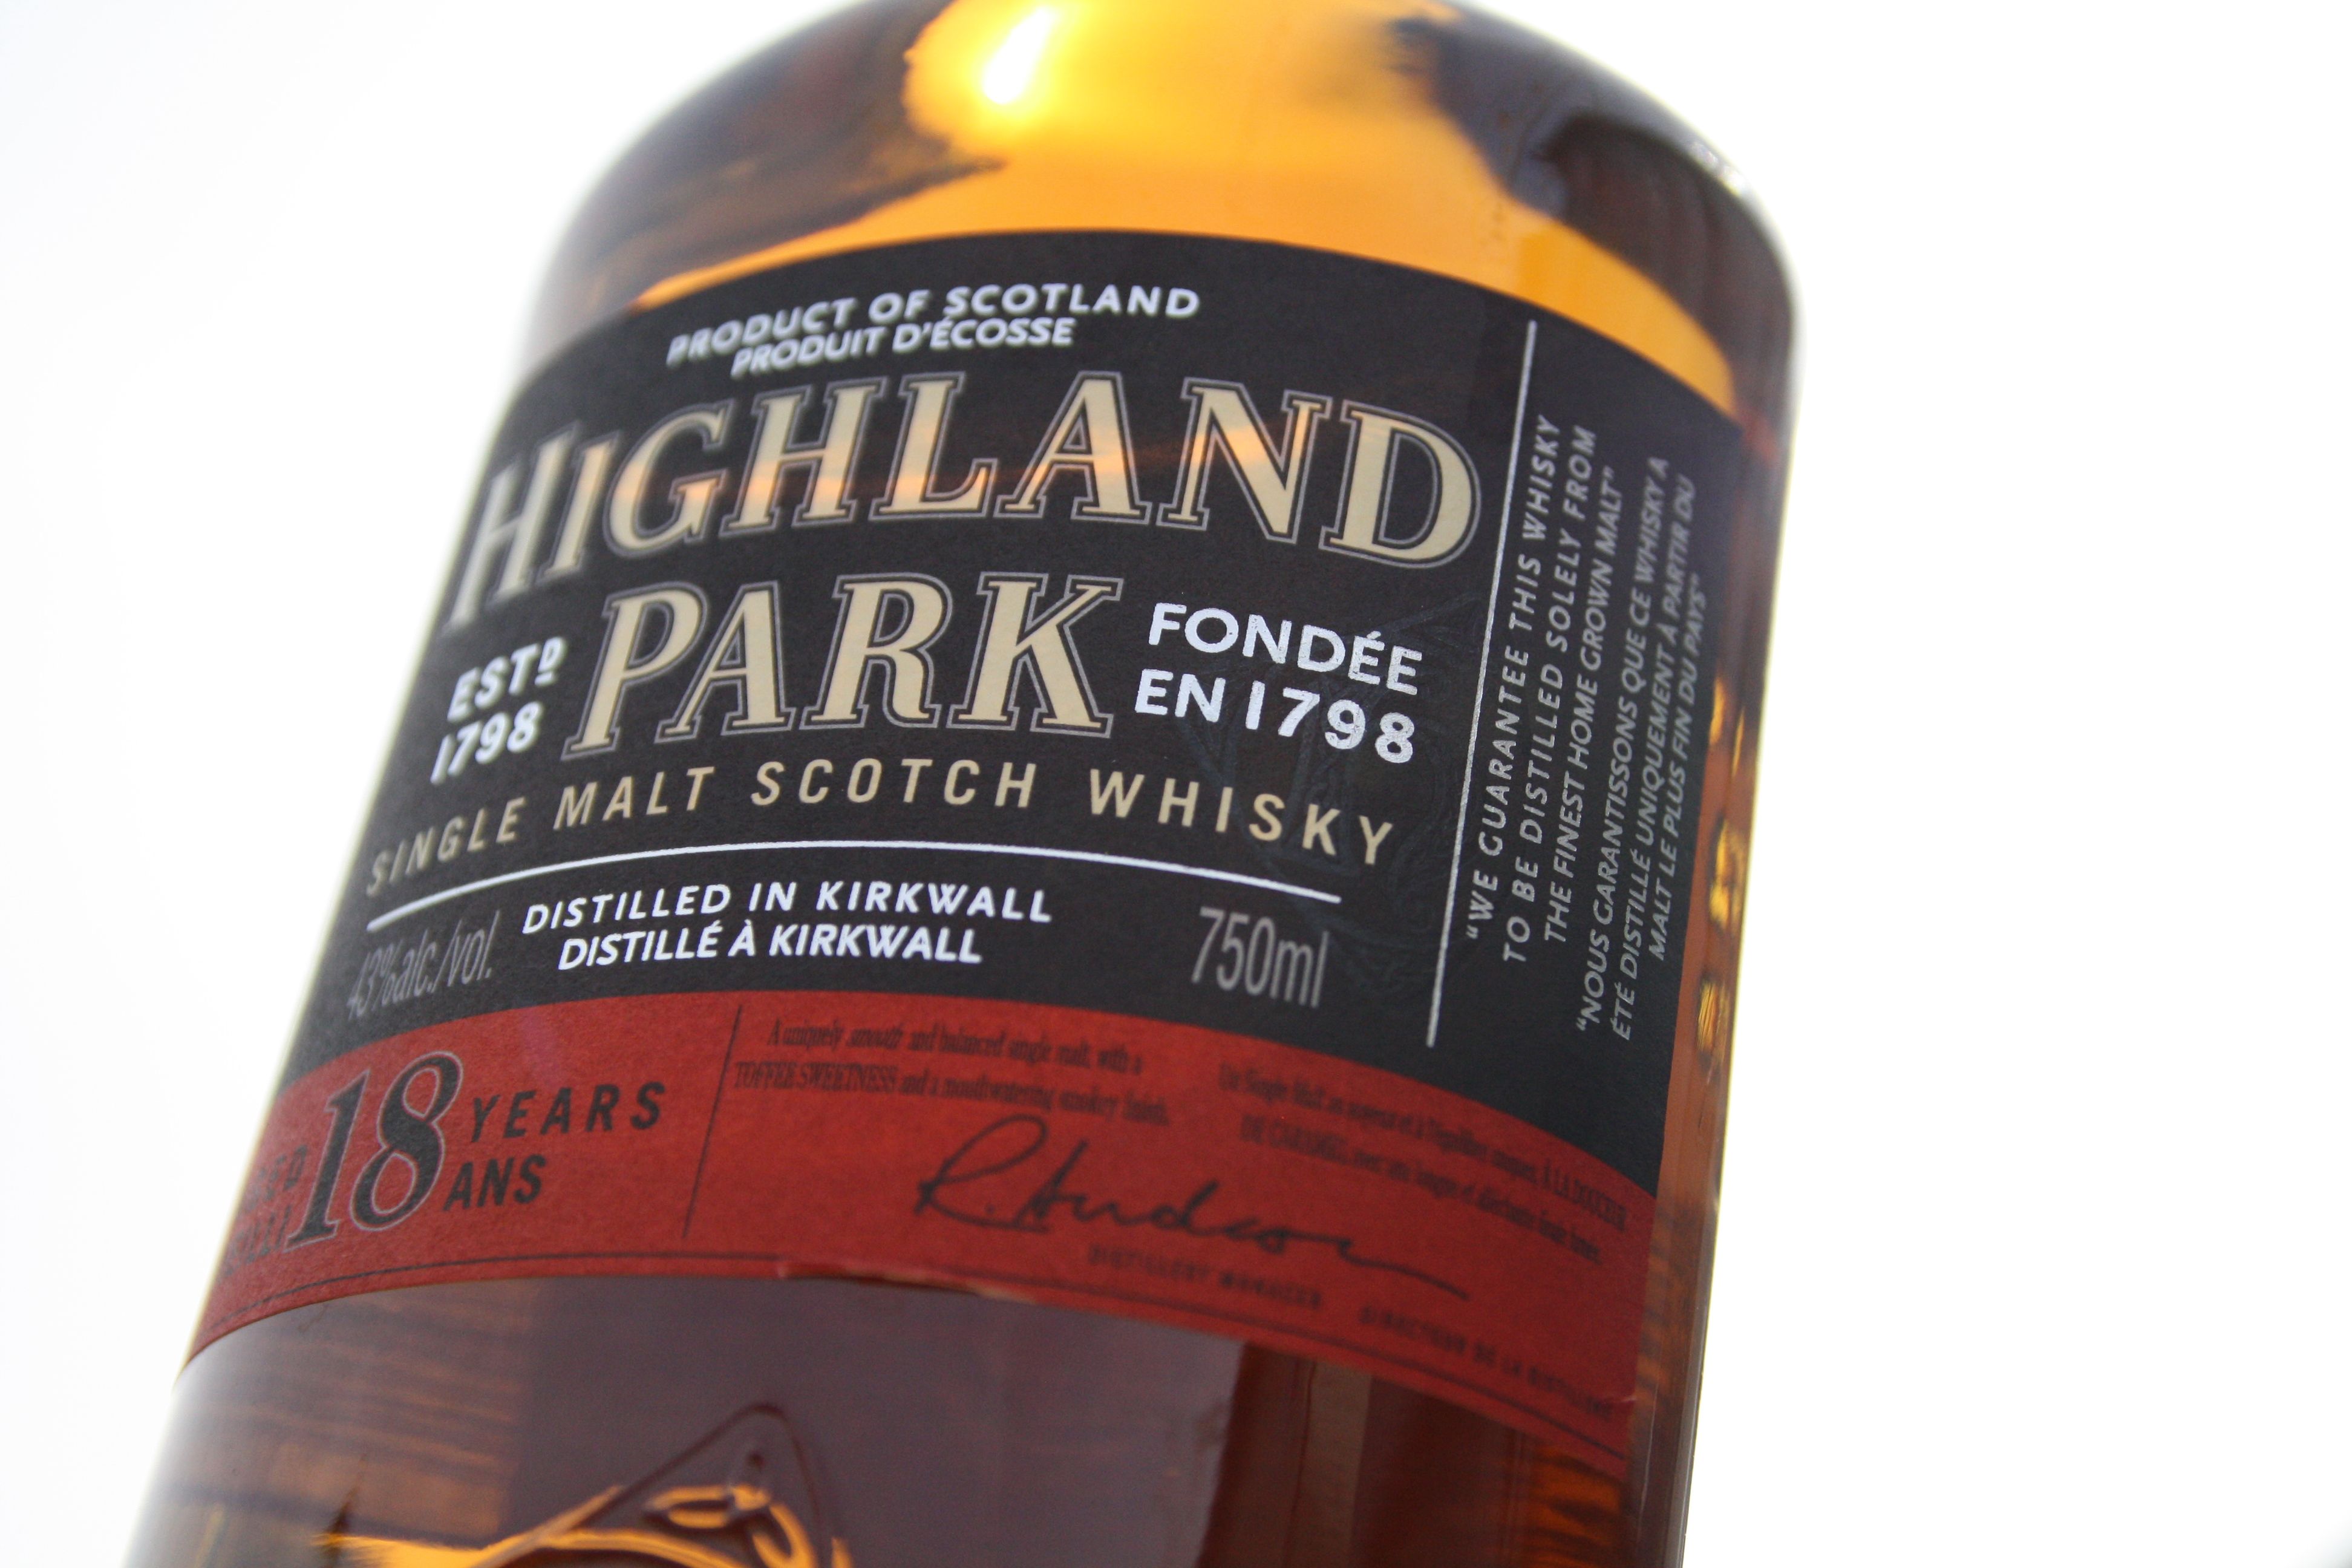 Whisky 4k ultra hd wallpaper background image 3888x2592 id 252154 wallpaper abyss - Highland park wallpaper ...